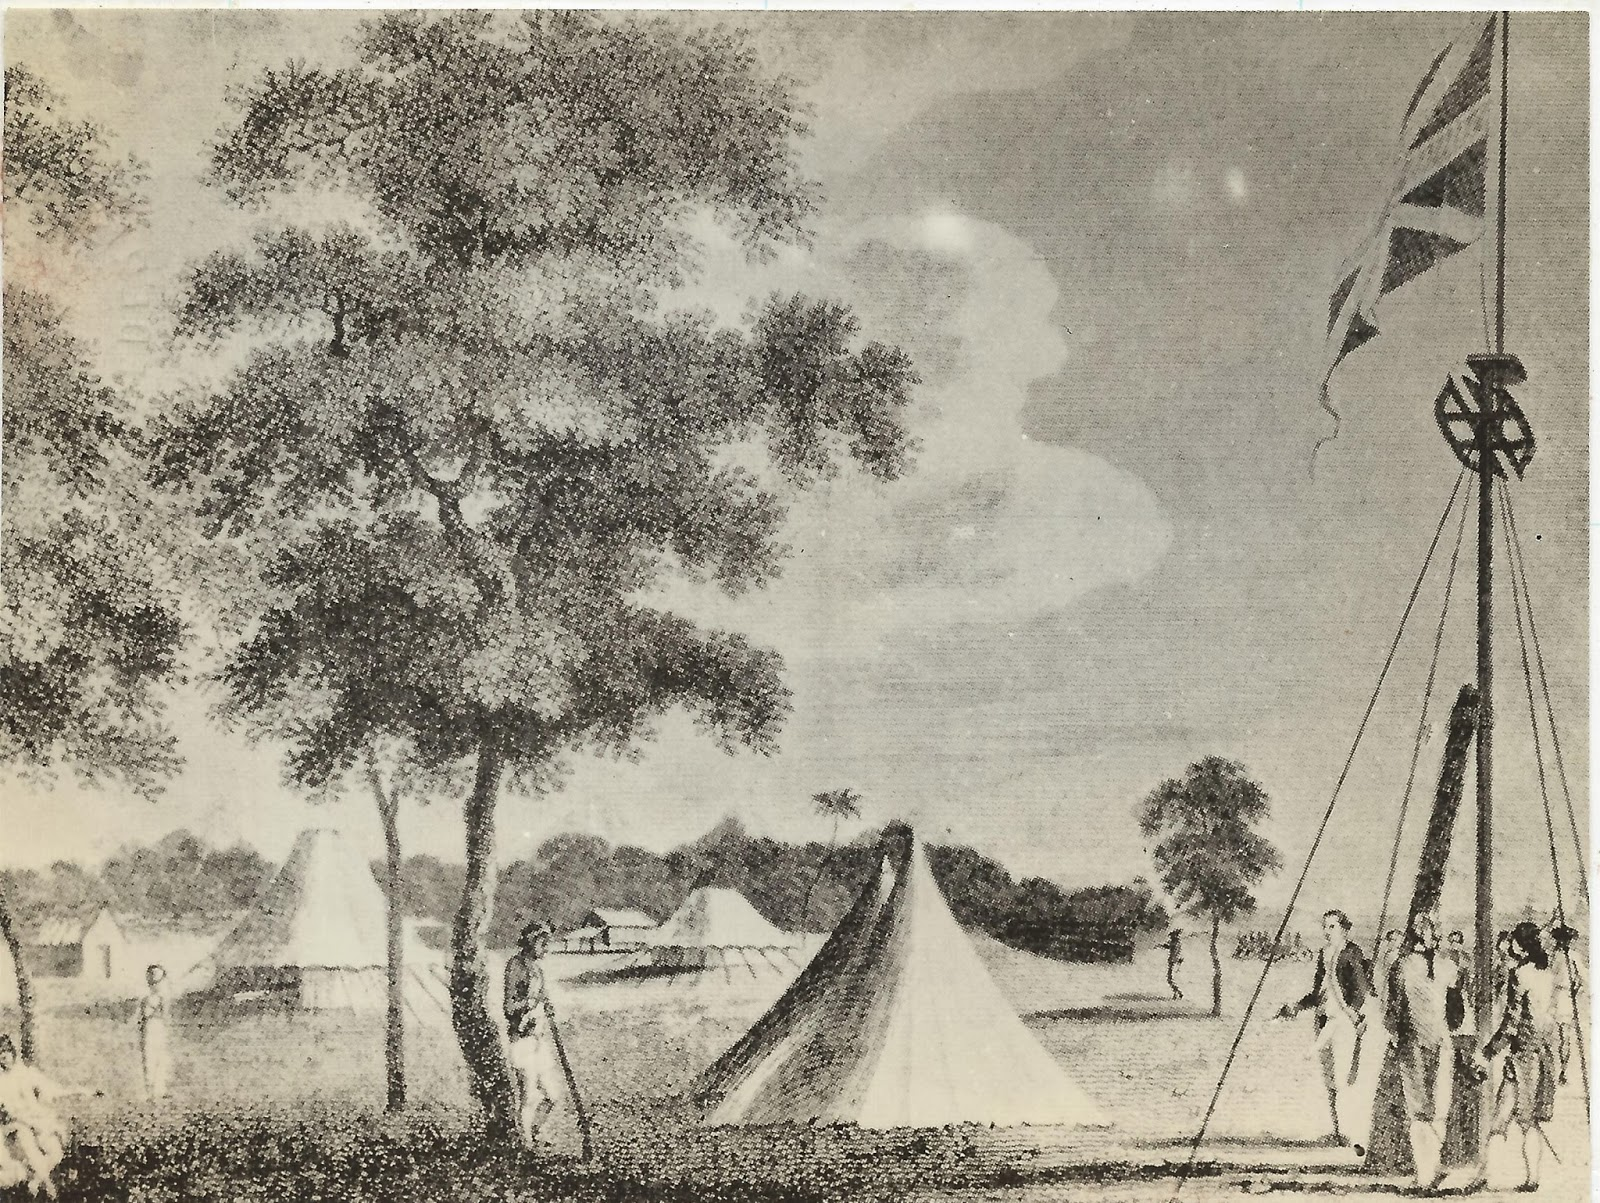 Captain Francis Light at the Flagstaff on Prince of Wales Island (Pulau Pinang), proclaiming the instructions of Governor-General of India on August 11, 1786. Image from the National Archives of Malaysia.